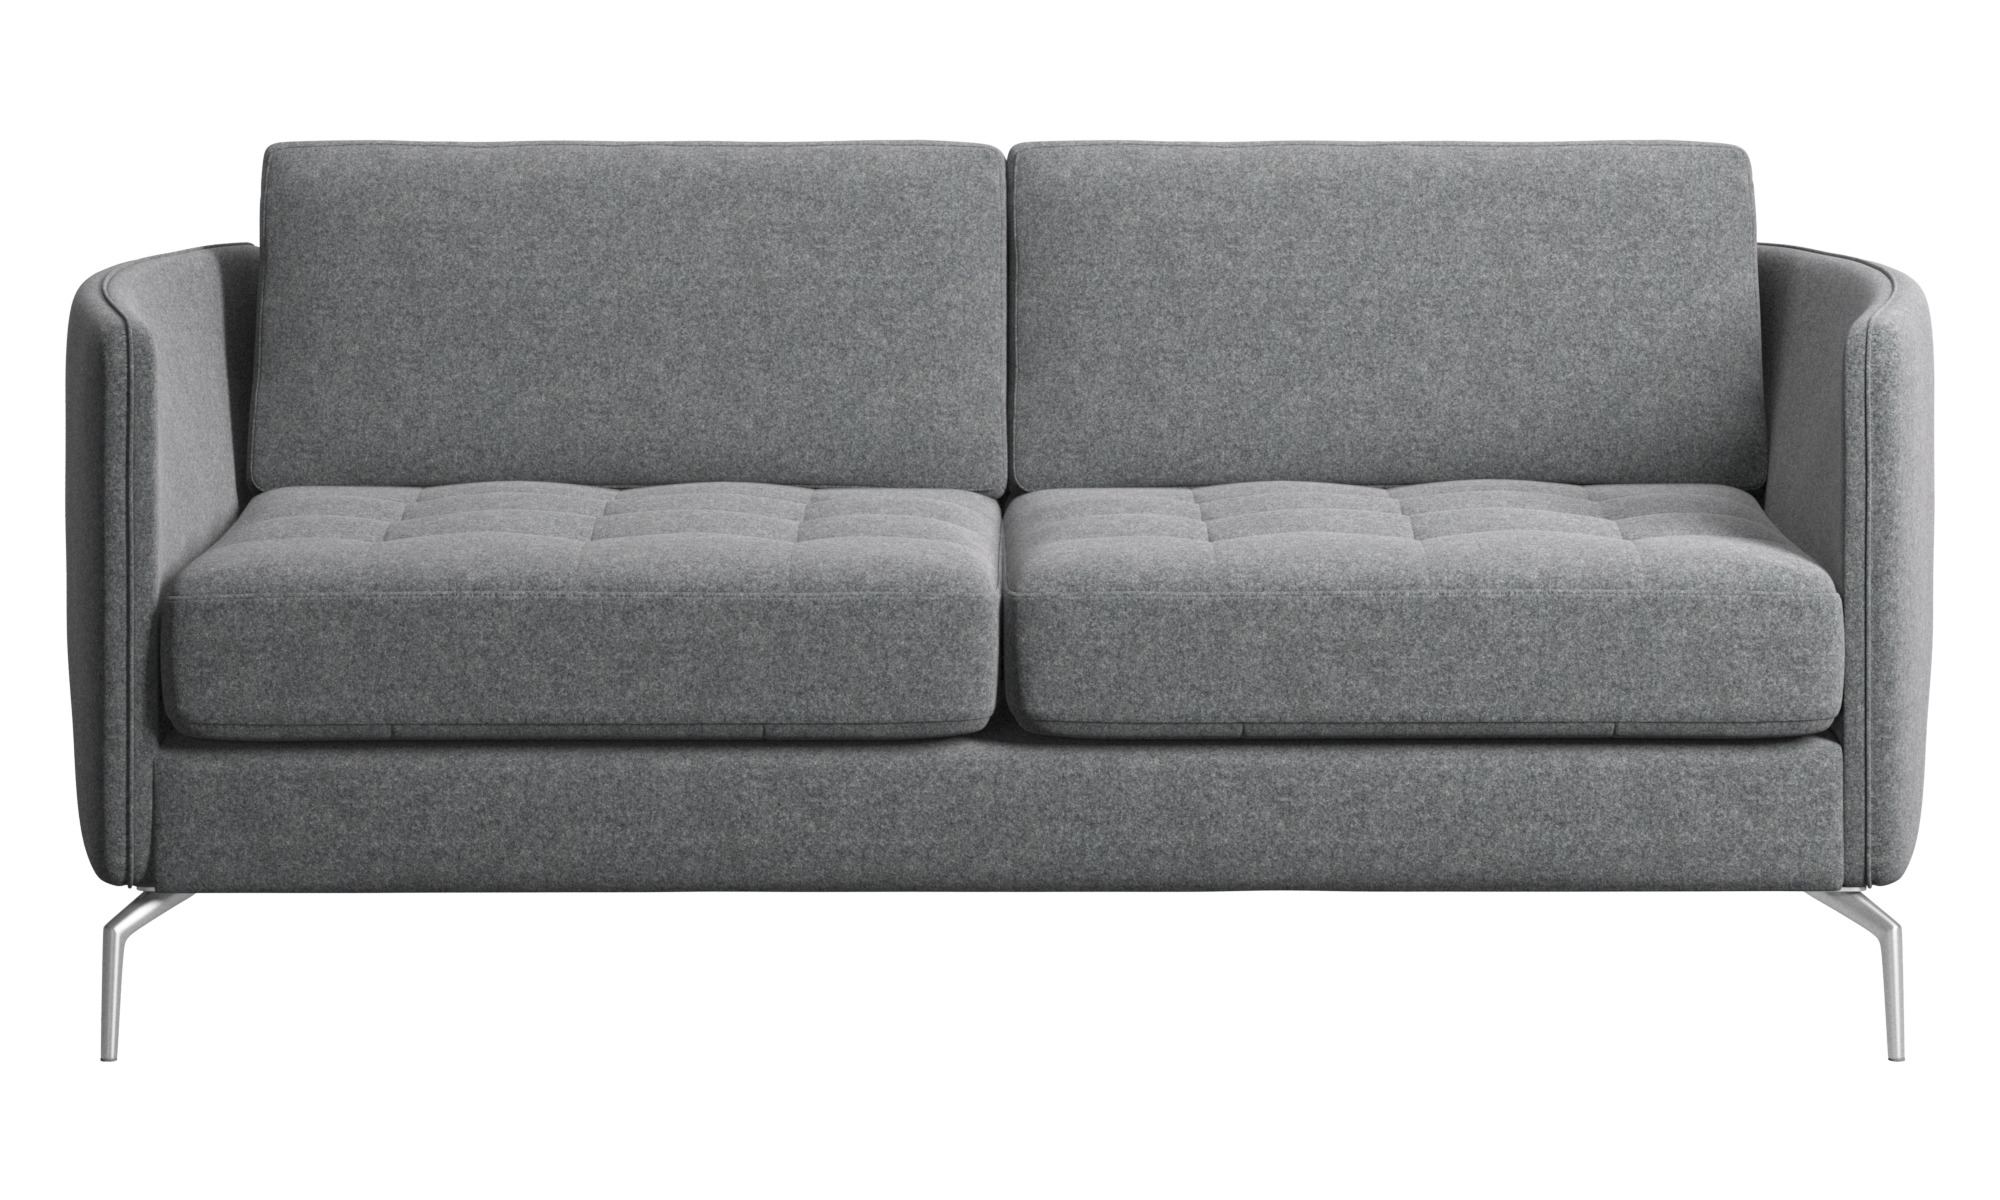 Tufted Blue Suede 3 Seat Sofa Loveseat Blue Couch Blue With Most Recently Released 3Pc Polyfiber Sectional Sofas With Nail Head Trim Blue/Gray (View 7 of 25)